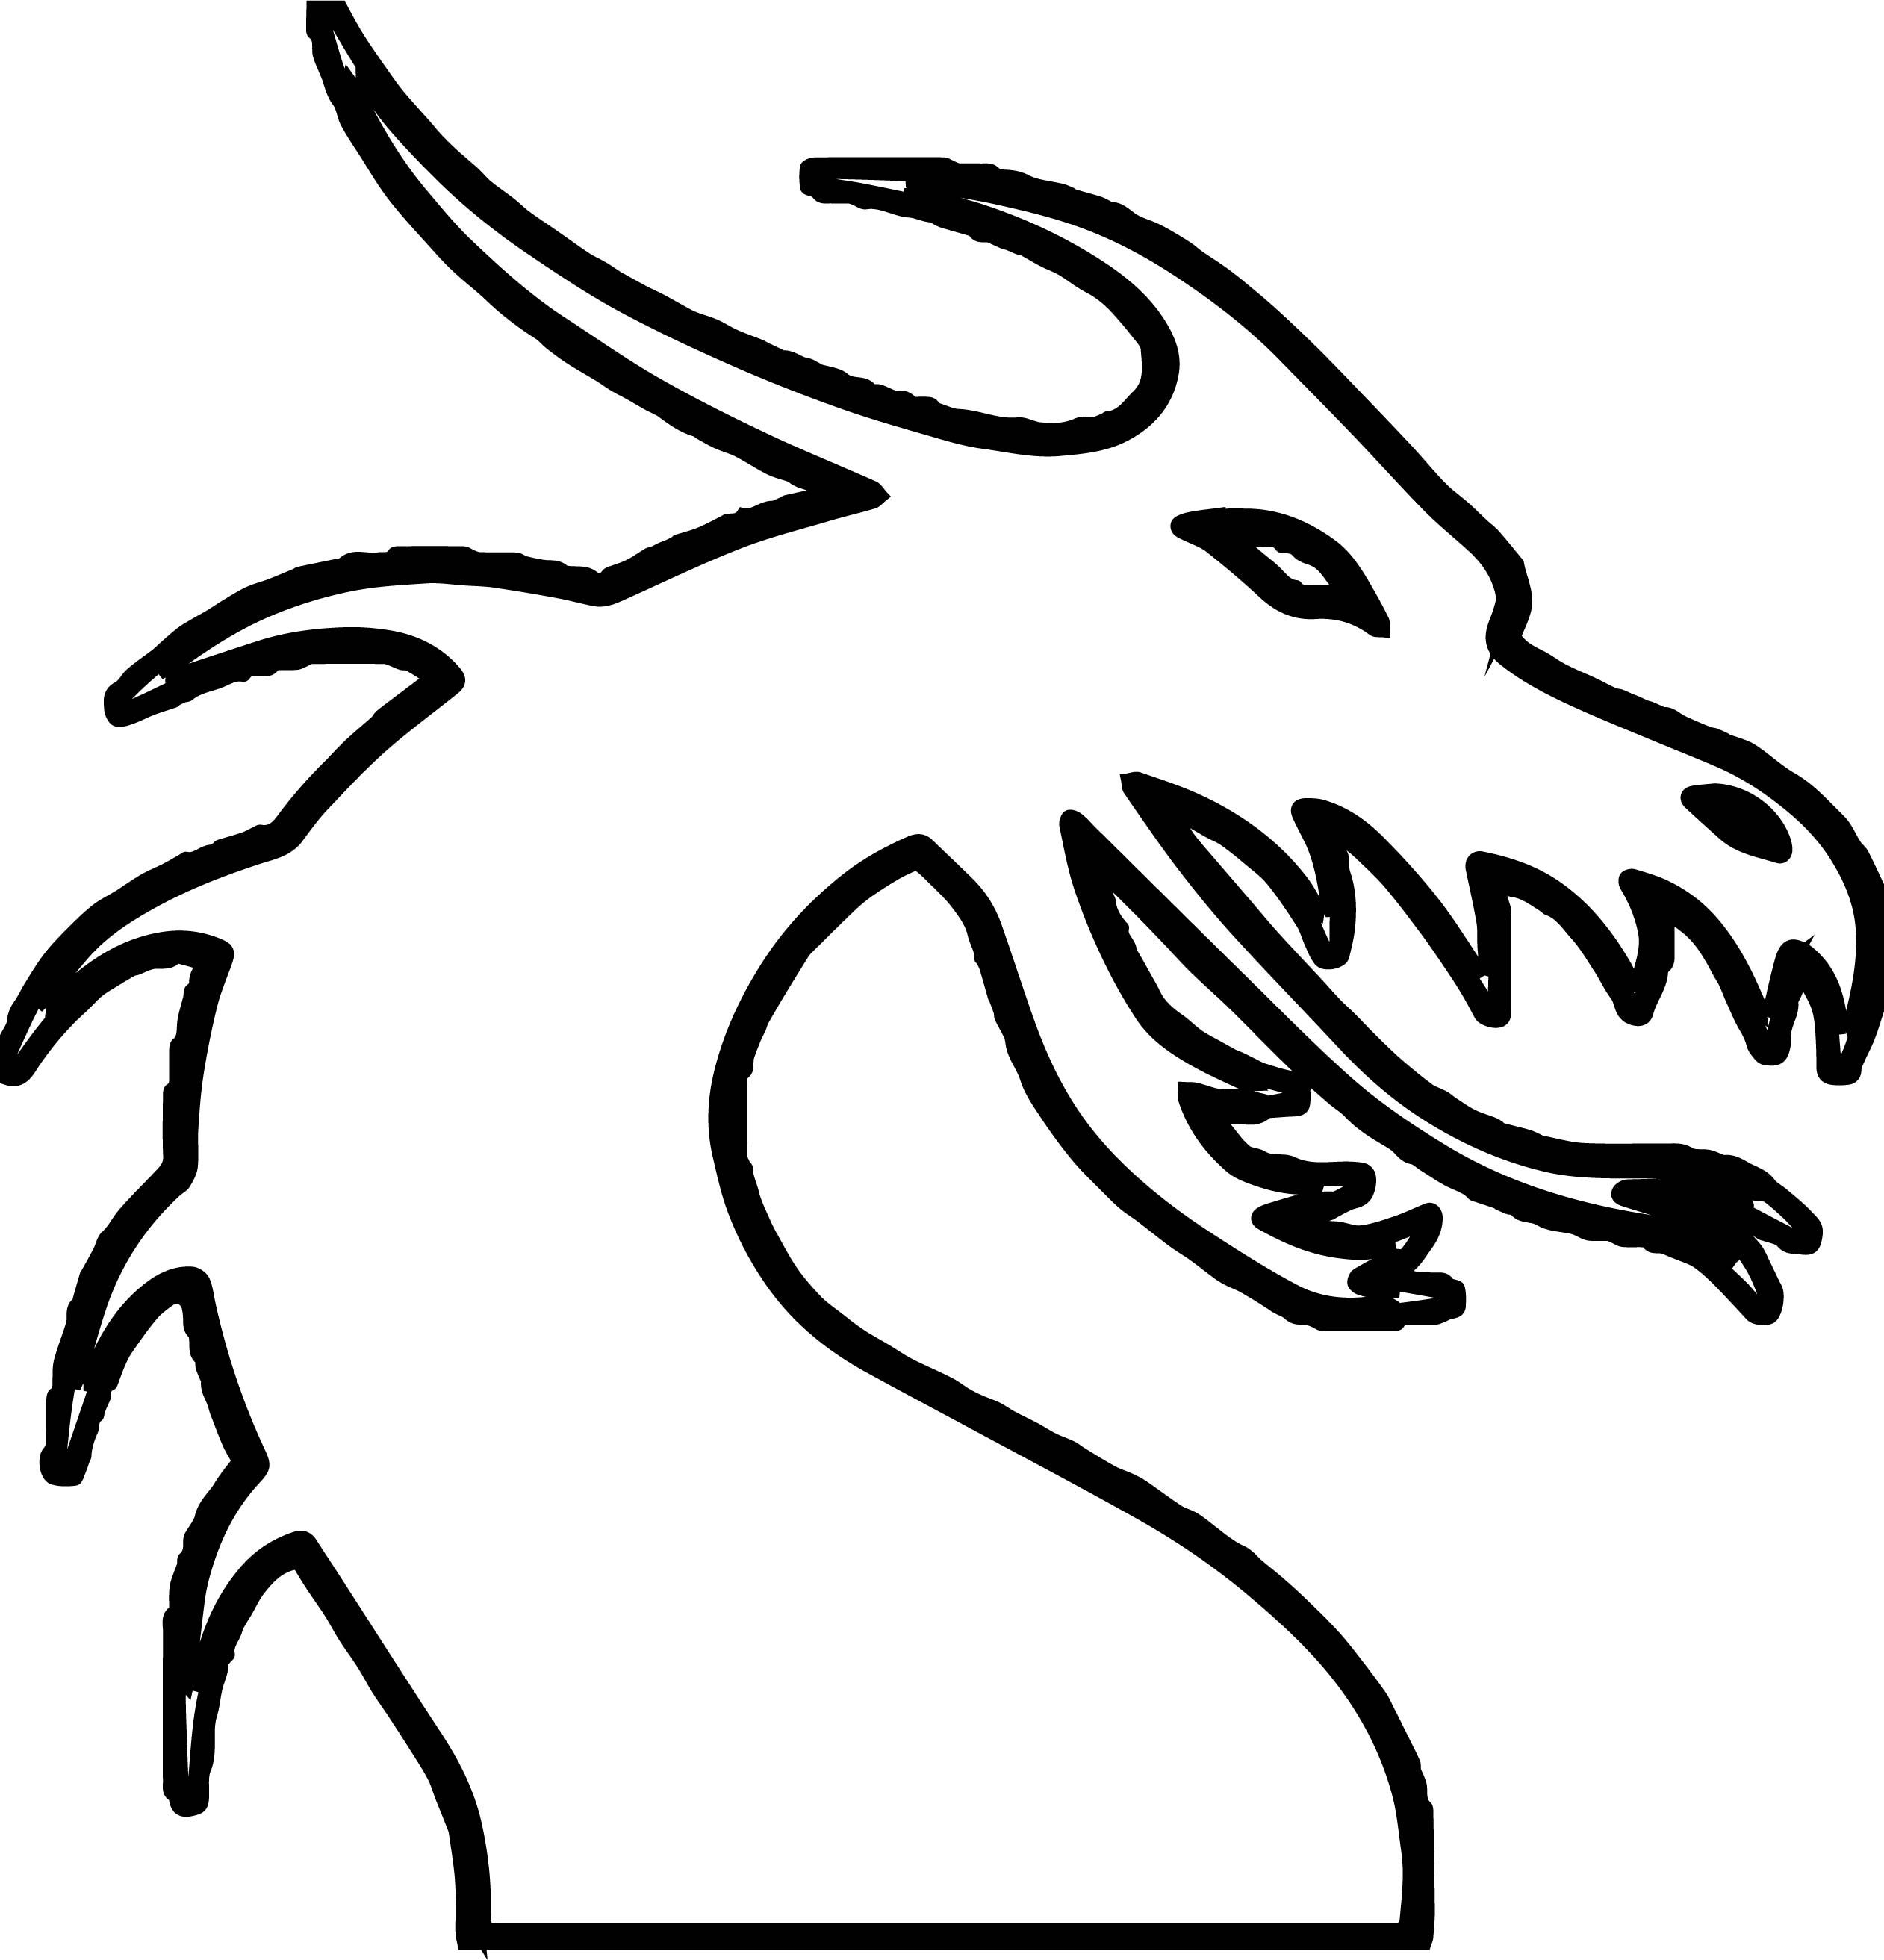 nice Dragon Outline Coloring Page | Coloring pages ...